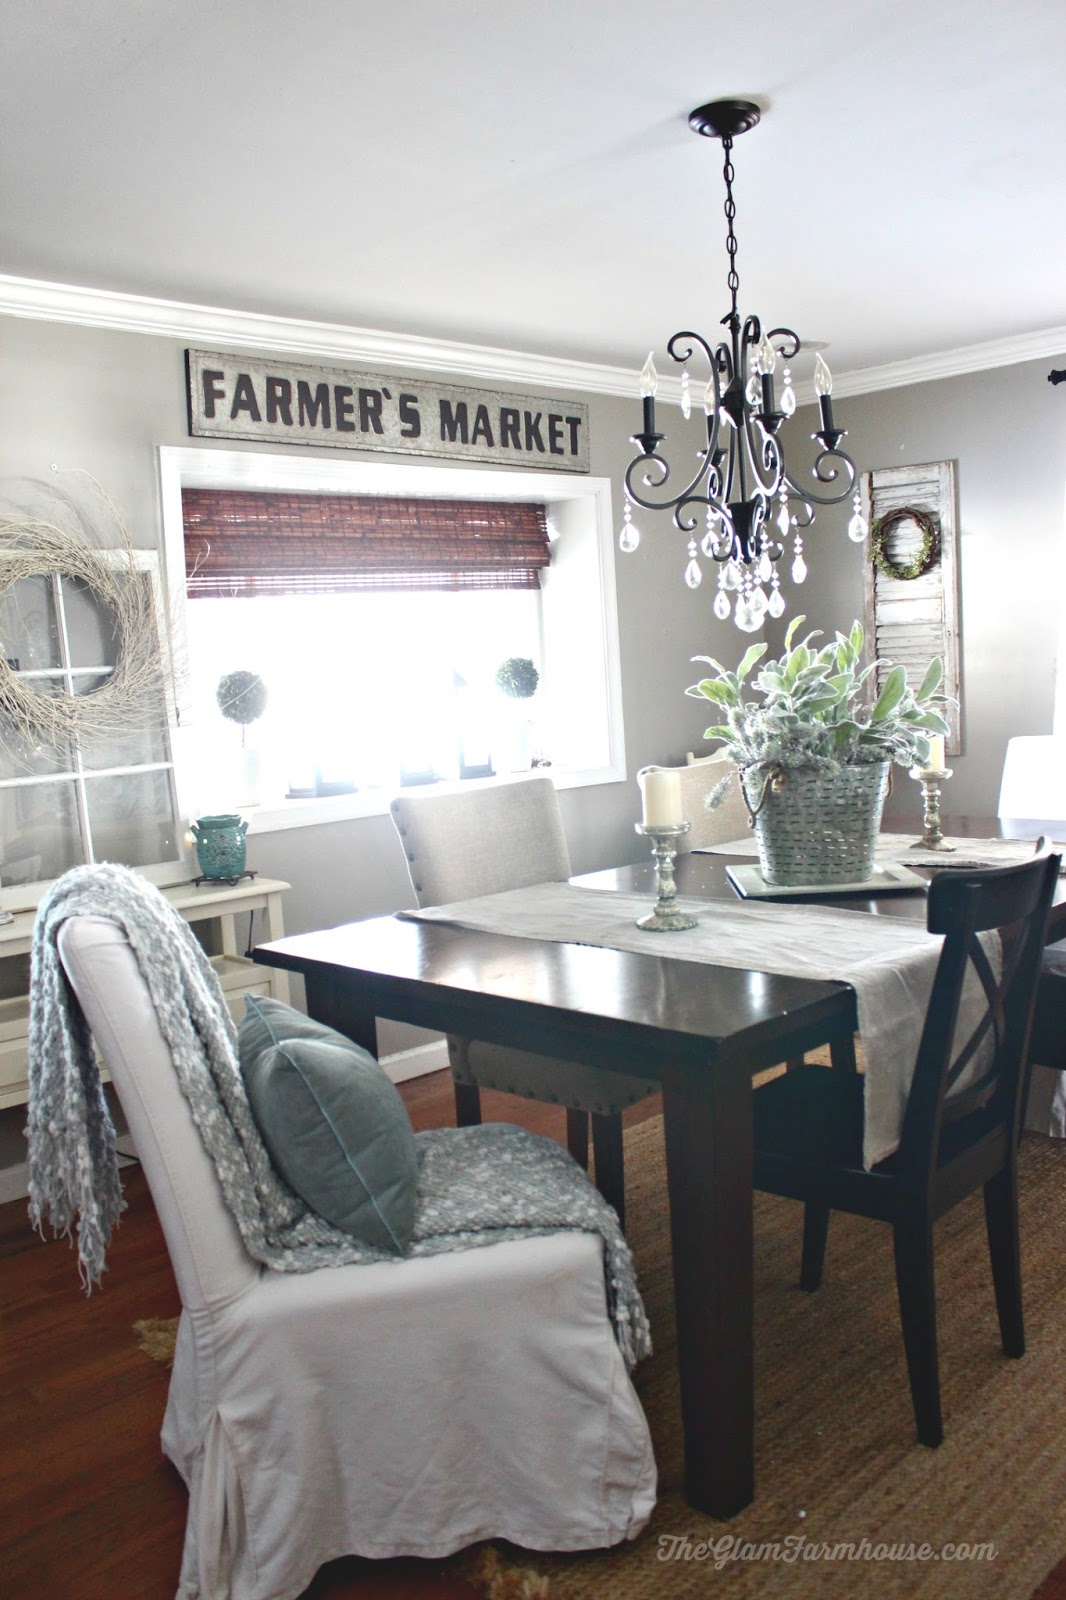 Rustic Glam Dining Room Tour with Before & Afters! - The Glam Farmhouse